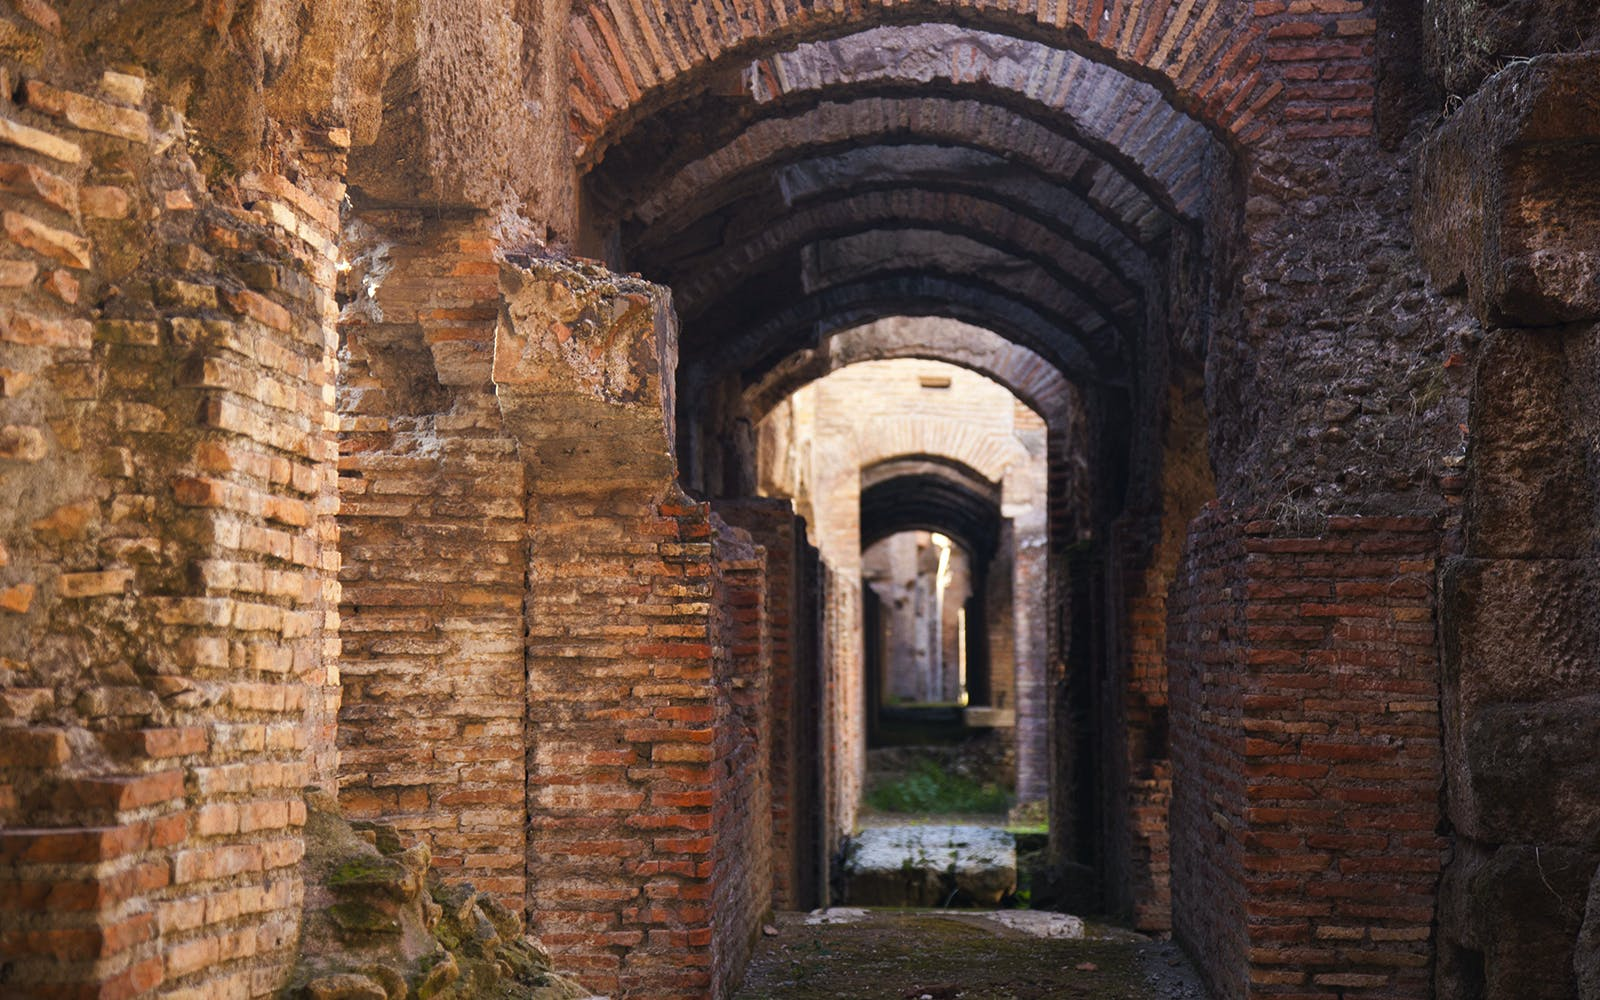 vip colosseum underground tour with arena, palatine hill & roman forum-2